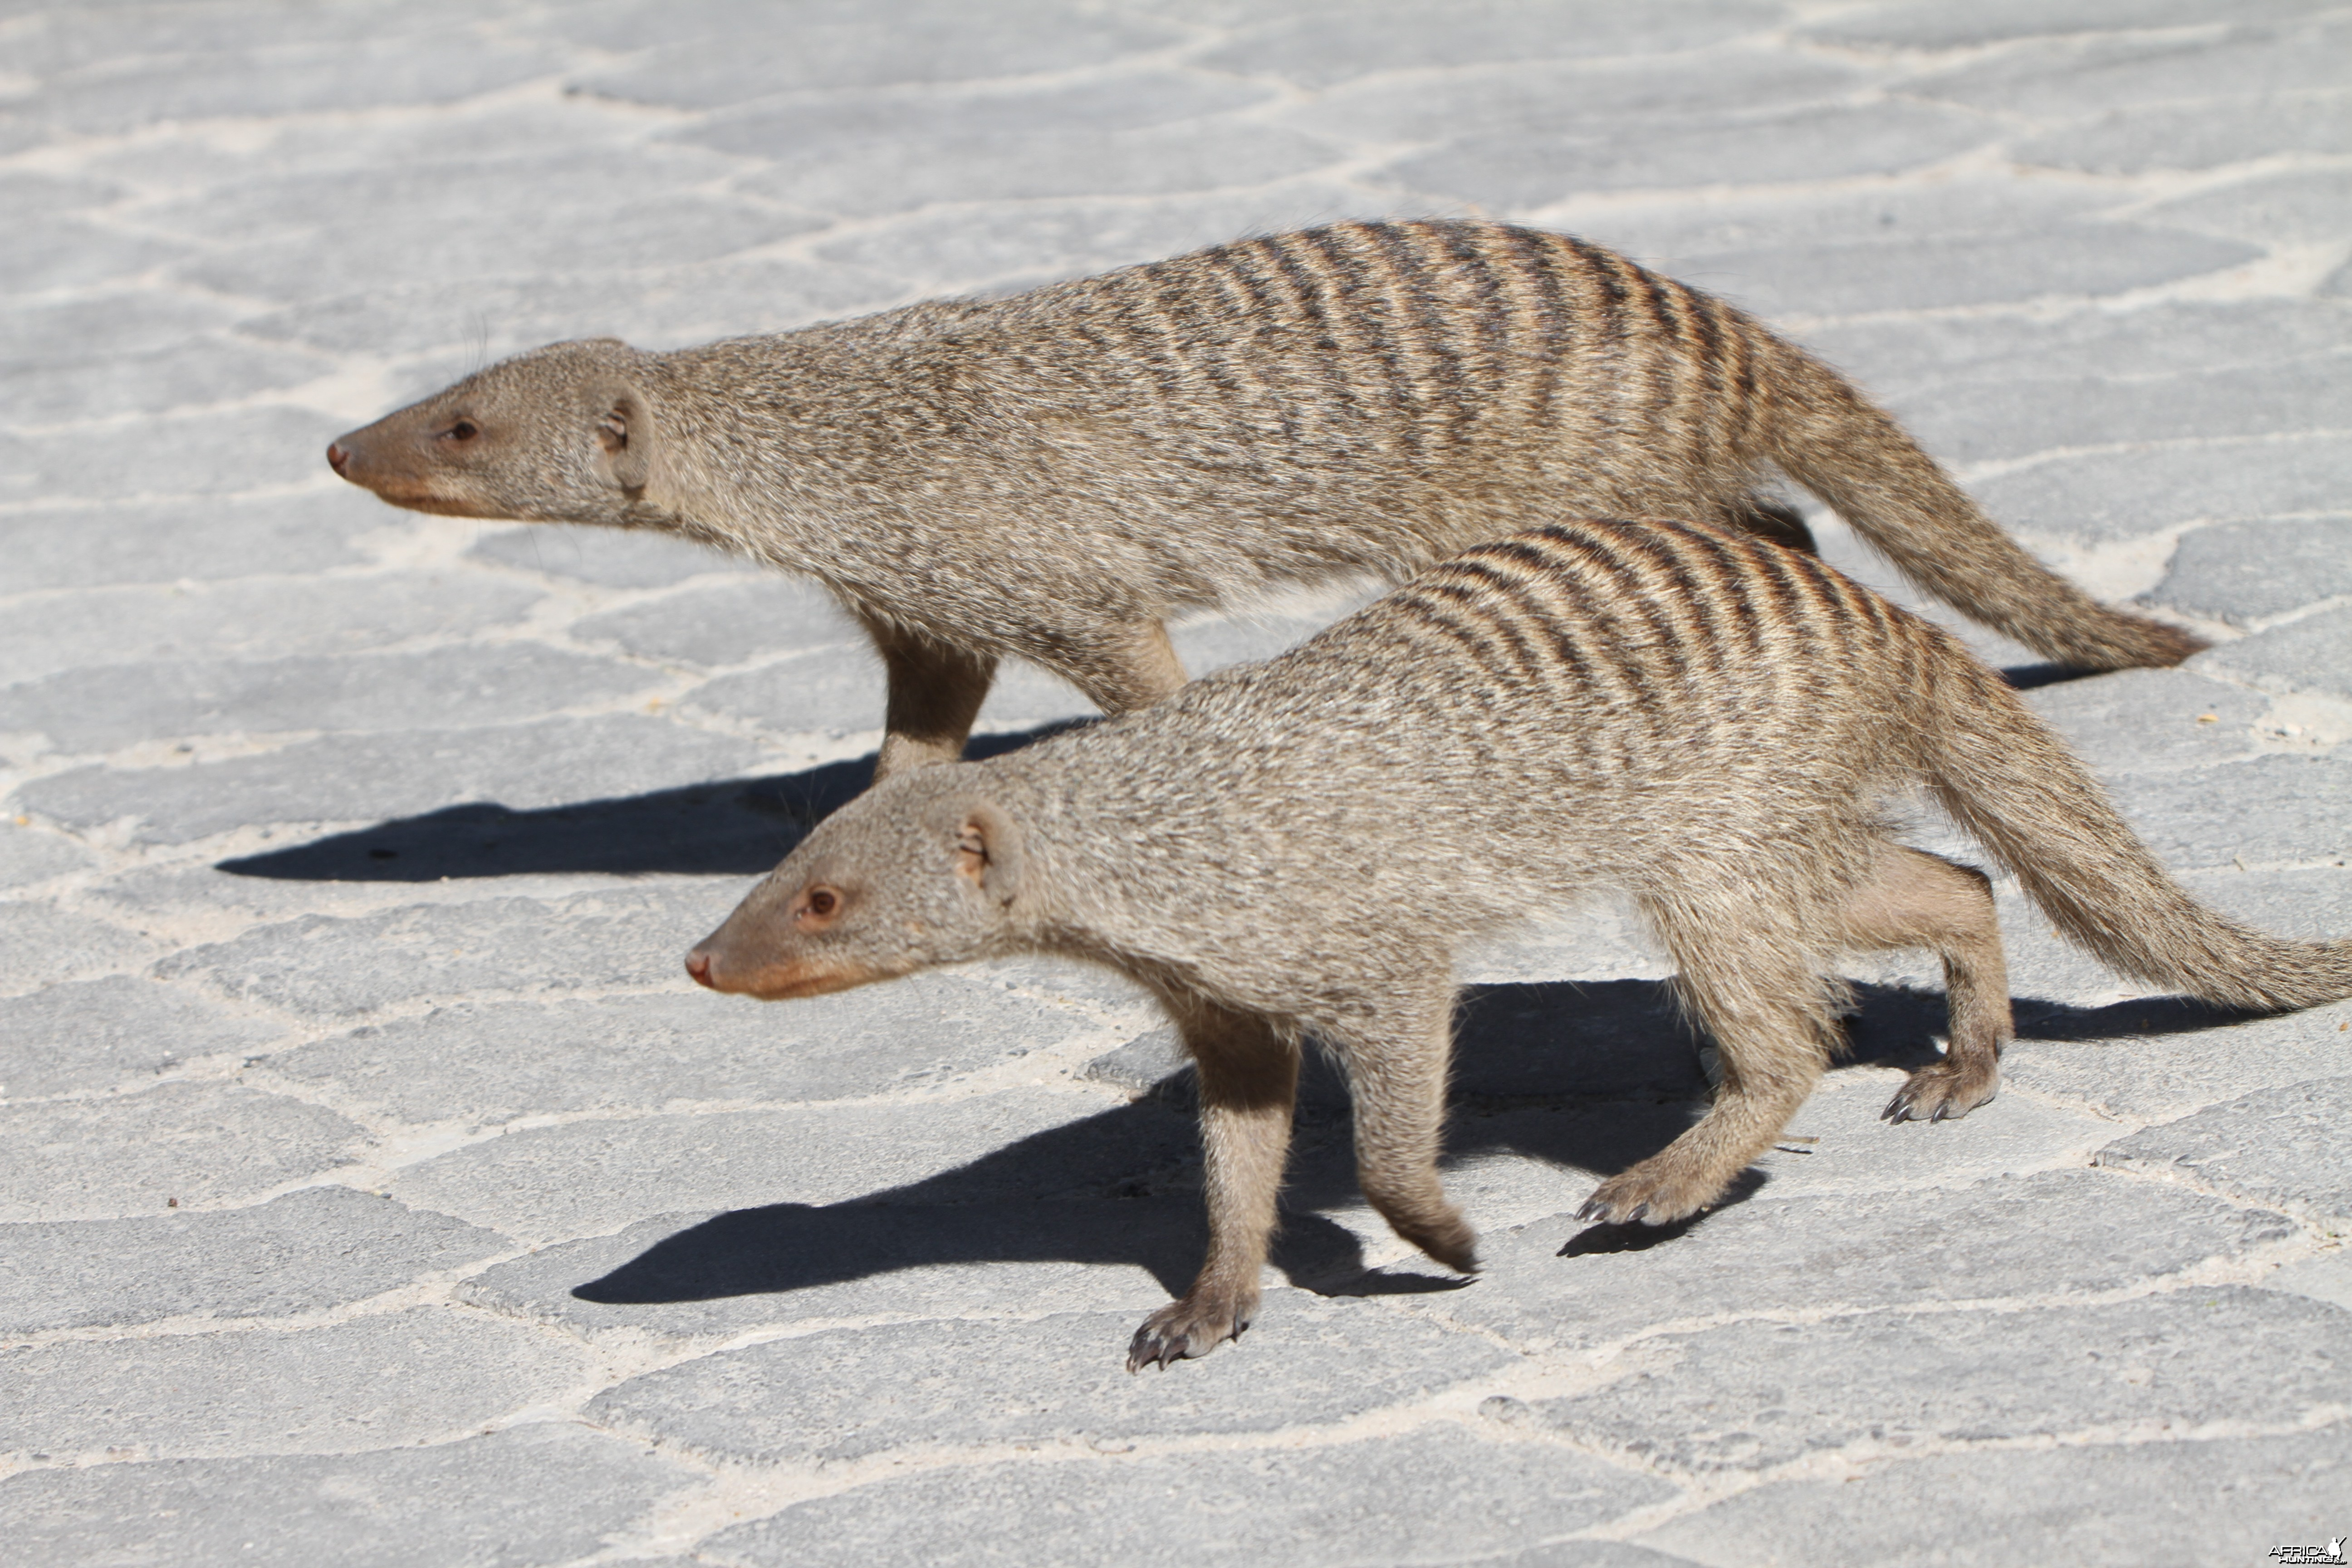 Banded Mongoose at Etosha National Park